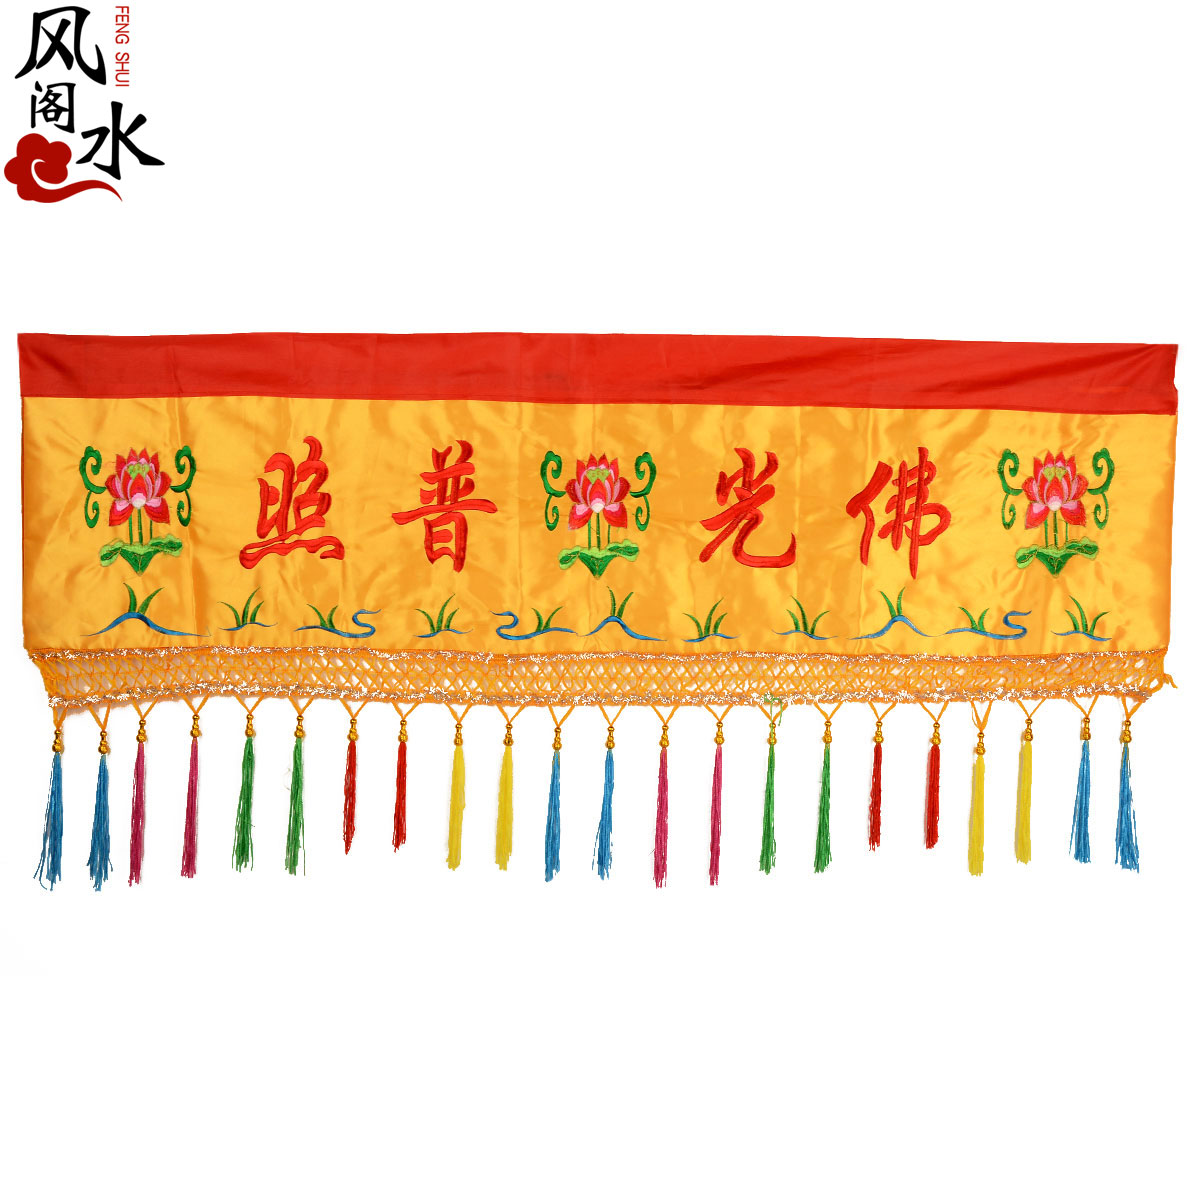 Fengshui Pavilion Buddhist Articles Buddhist Hall Embroidery 1 m 1.5 m 2 m Buddhist light pervasive banner across the eyebrows